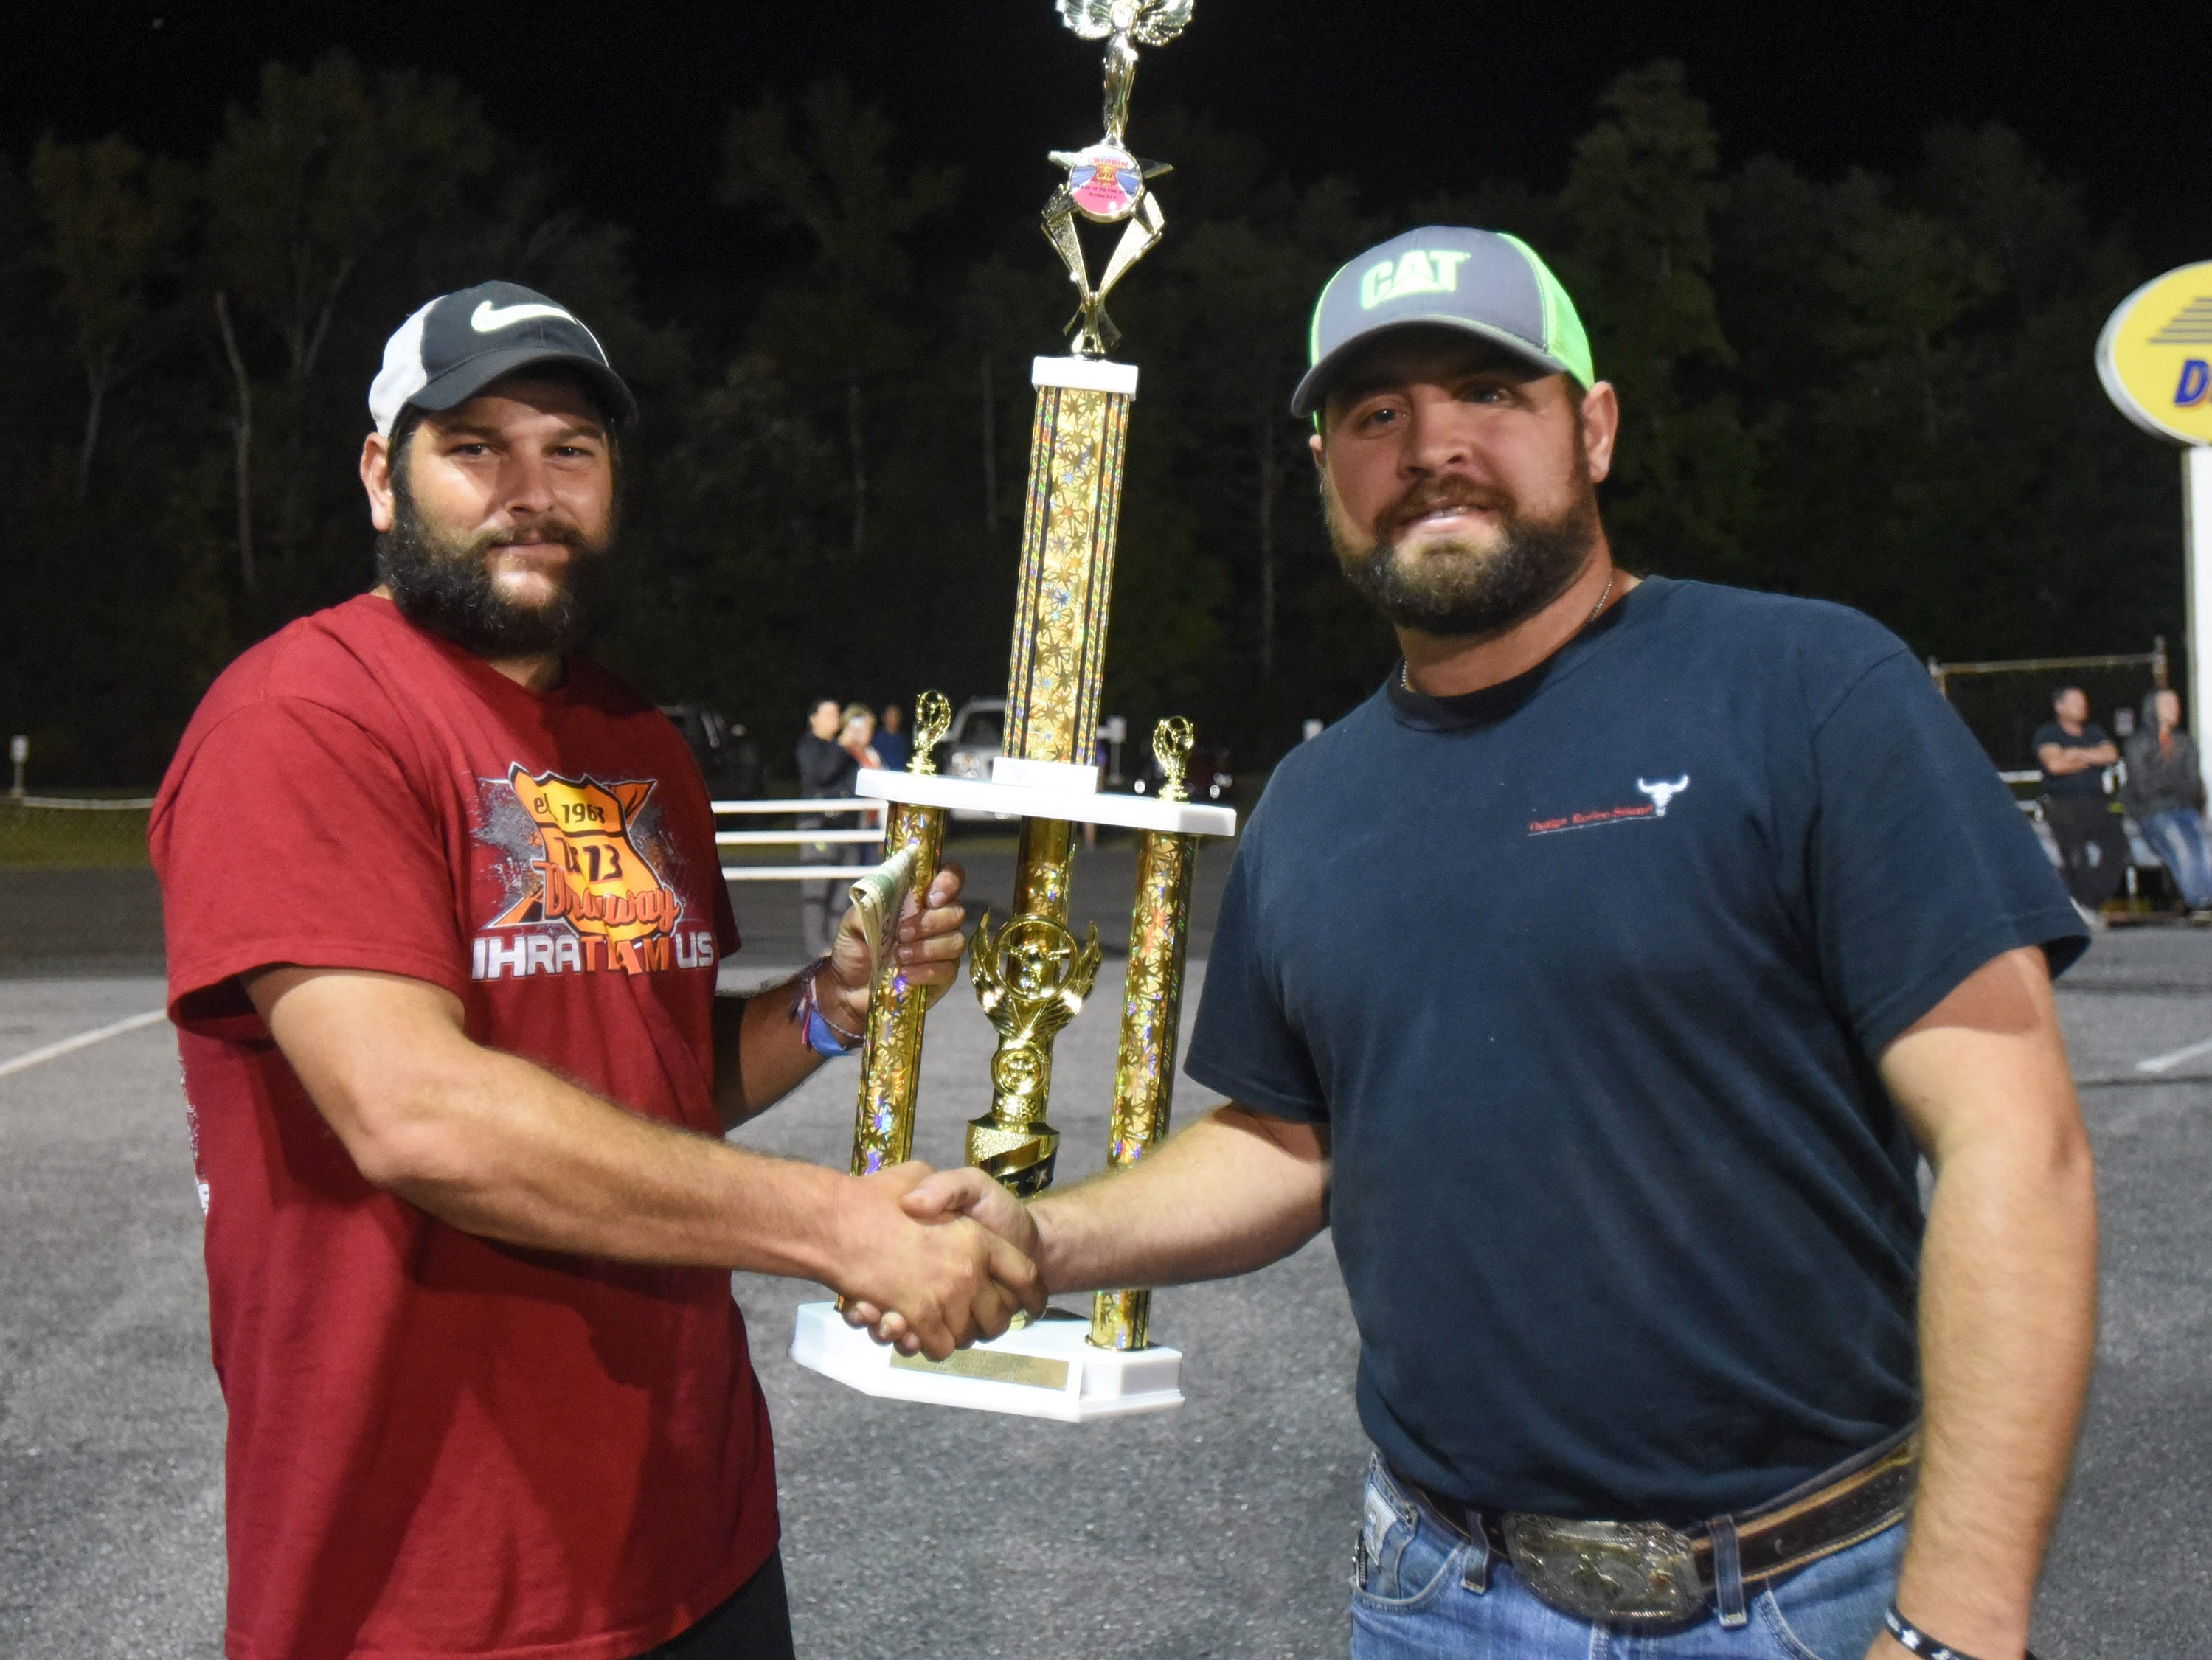 Billy McLamb accepts the First Place trophy and $500 from T.J. Torres with Special Events Productions after winning the first Endless Summer Cruisin' 2018 Burnout Contest at the U.S. 13 Dragway in Delmar.   (Photo by Todd Dudek for The Daily Times)